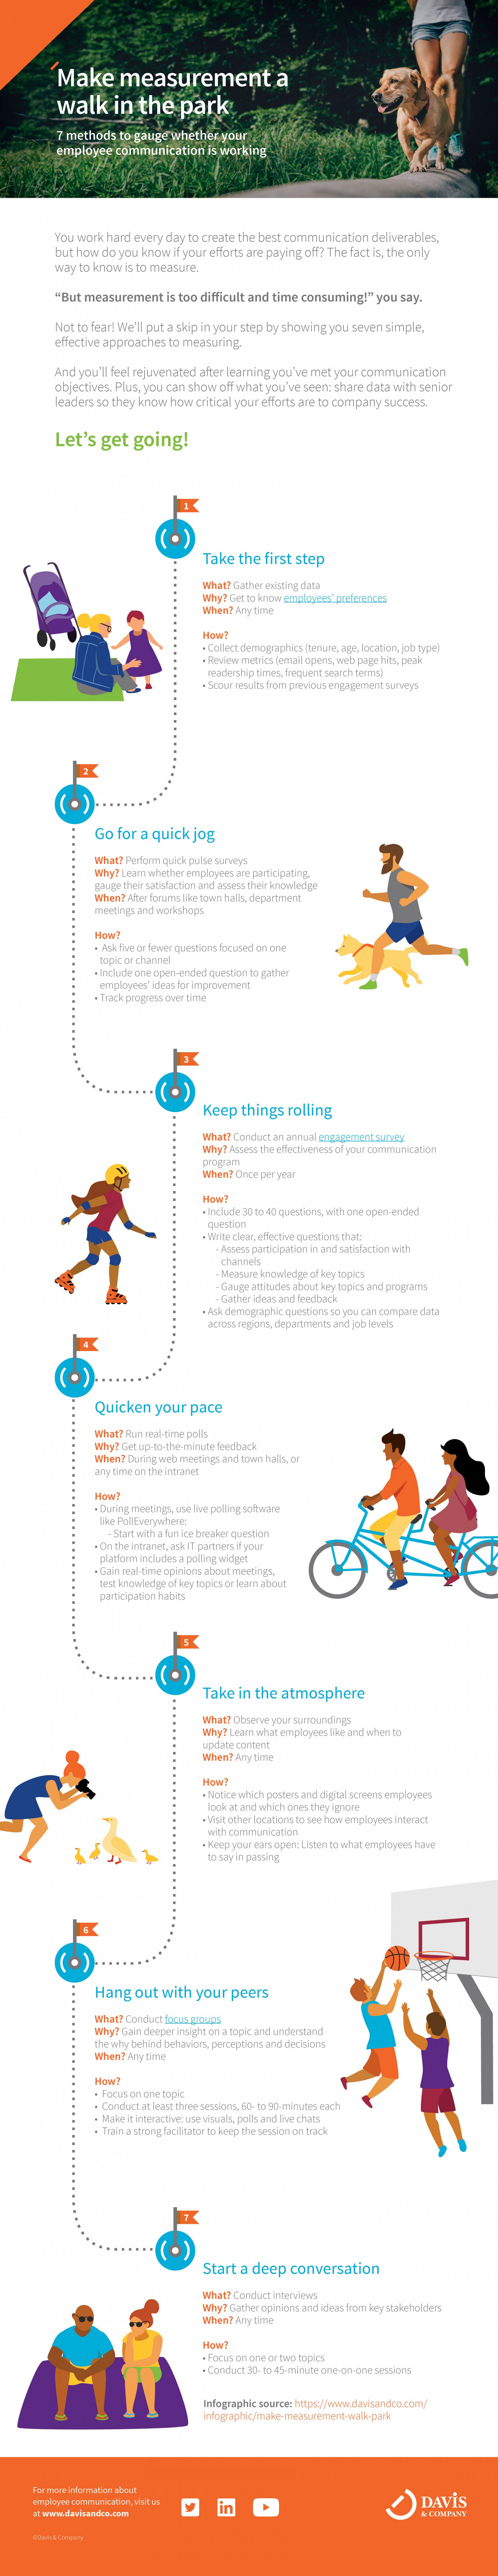 Make measurement a walk in the park Infographic